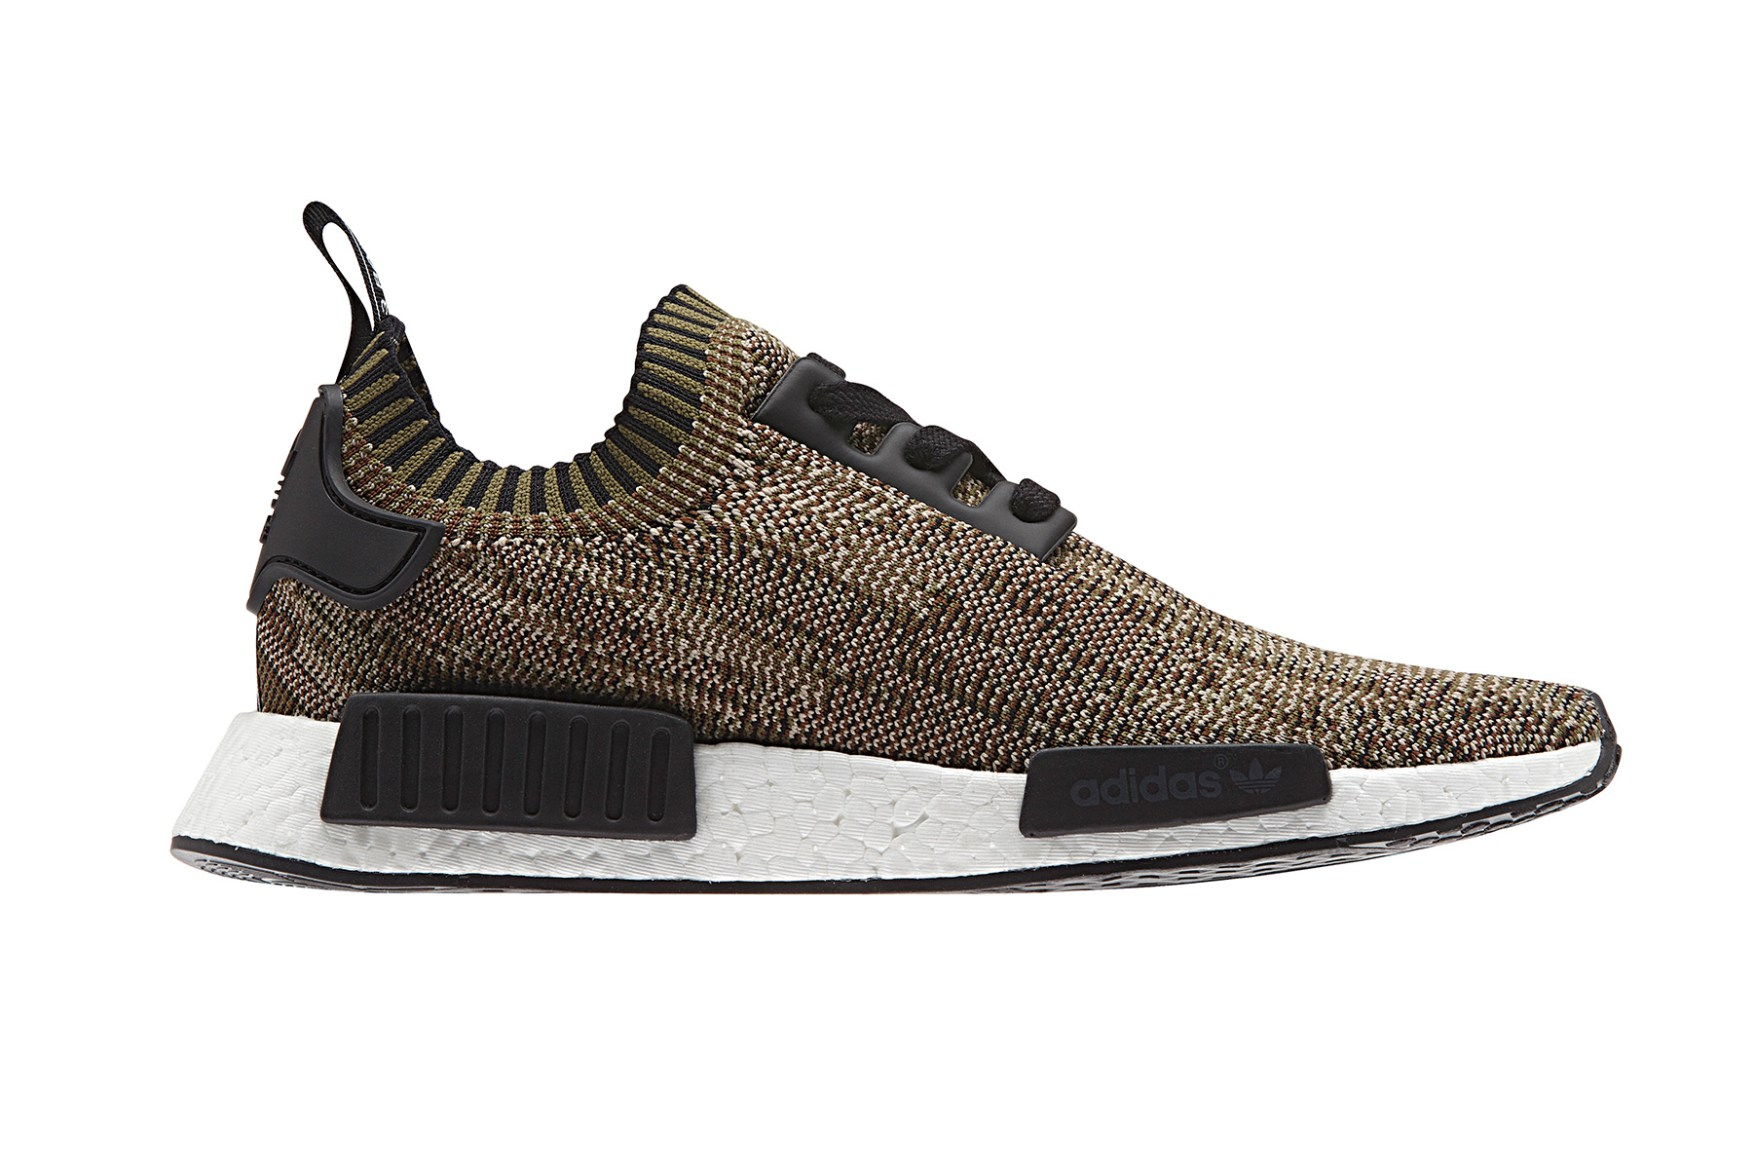 adidas-nmd-r1-camo-pack-2